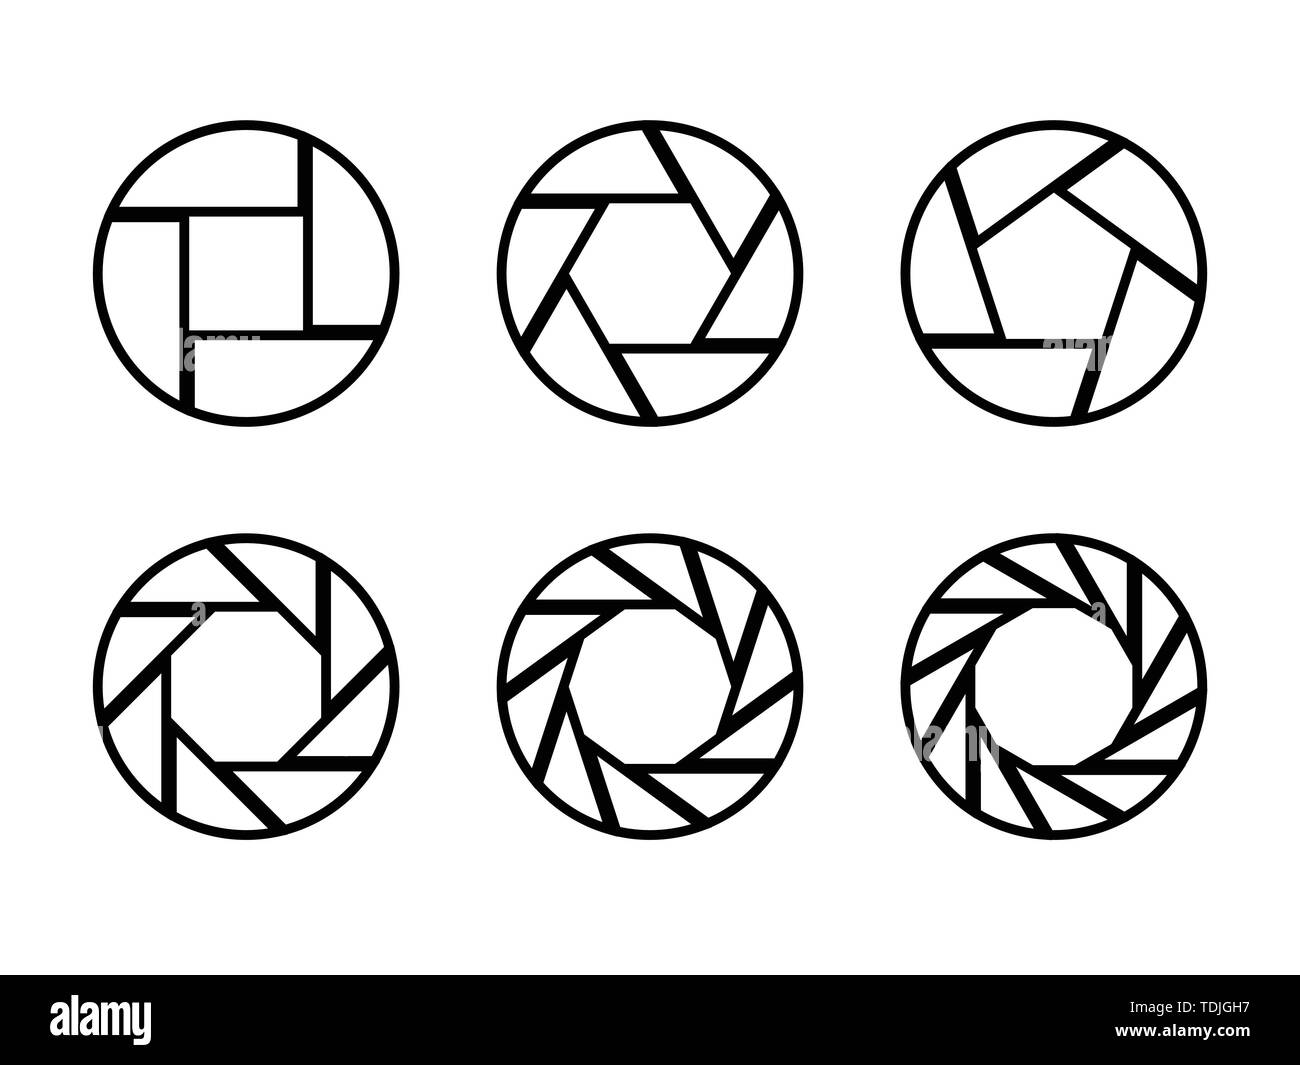 Set of black camera lens aperture icons isolated on light background. Camera objective icon. Shutter icon. Focus icon. Zoom objective for photographer - Stock Image